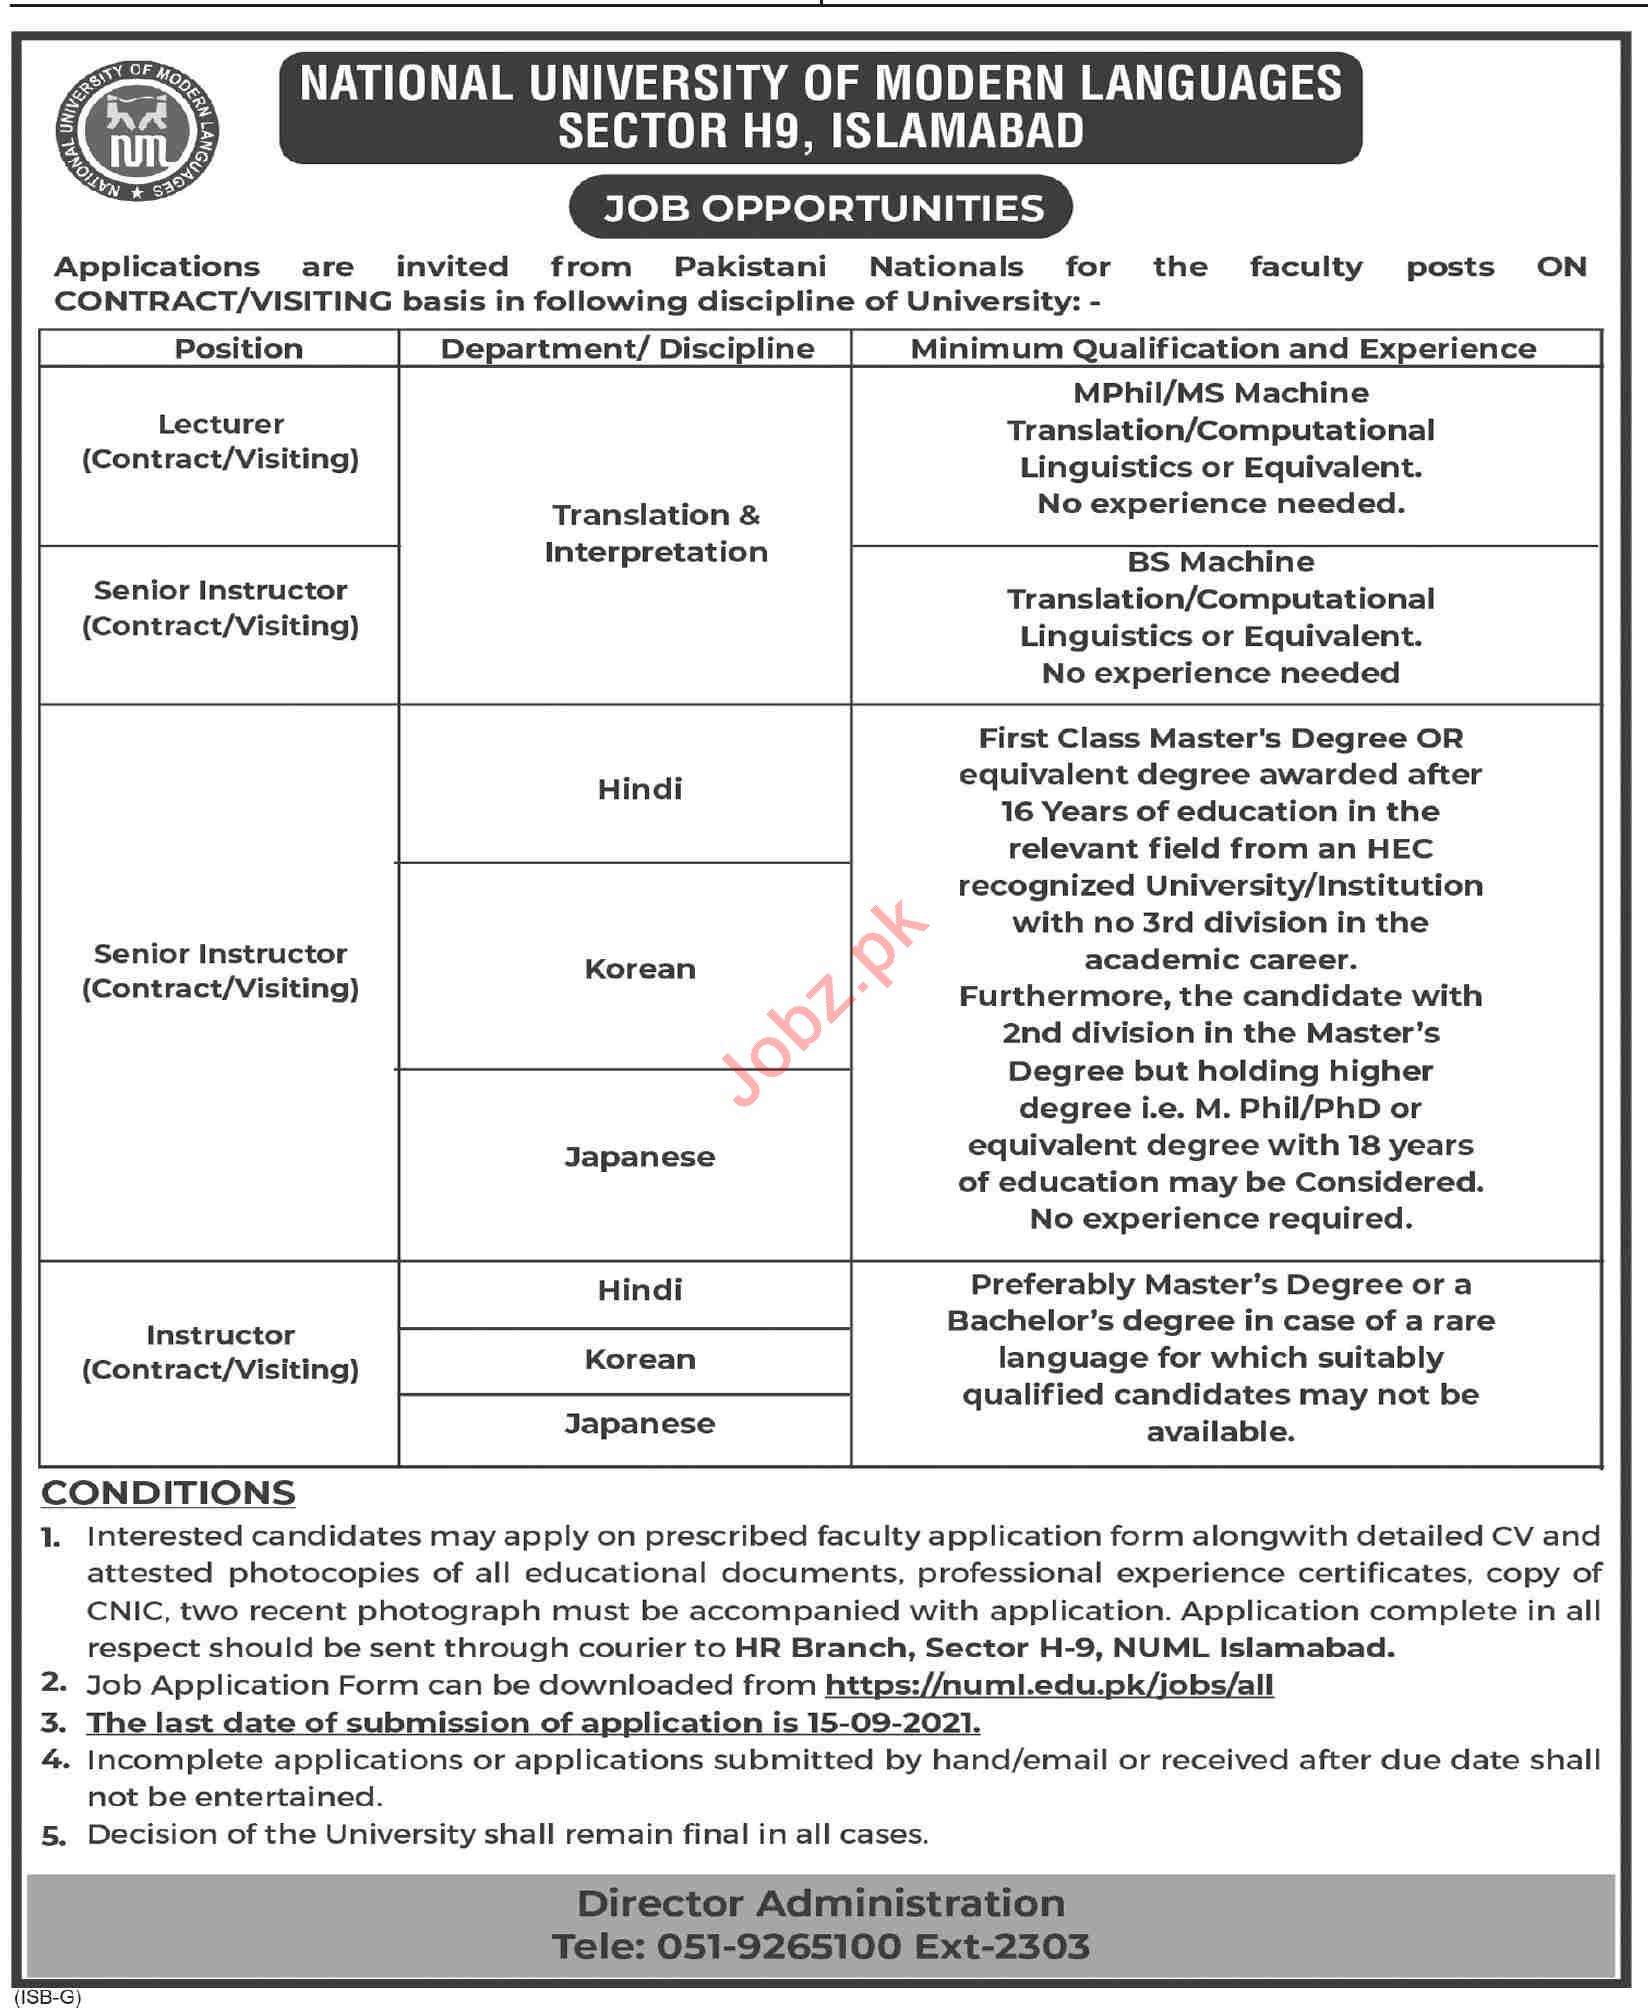 NUML University Islamabad Jobs 2021 for Lecturers